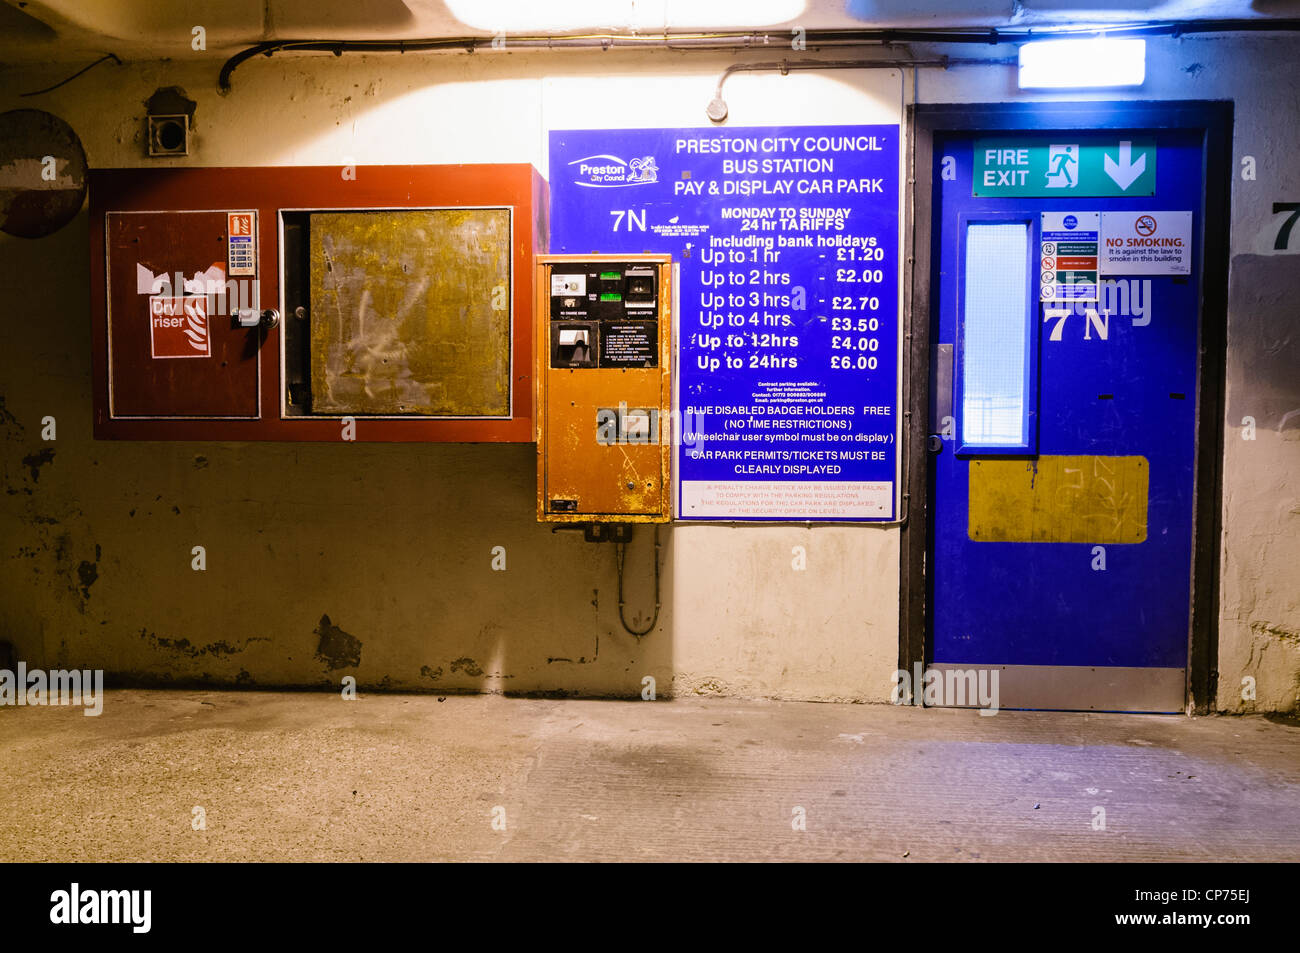 Pay station in Preston Bus Station car park - Stock Image